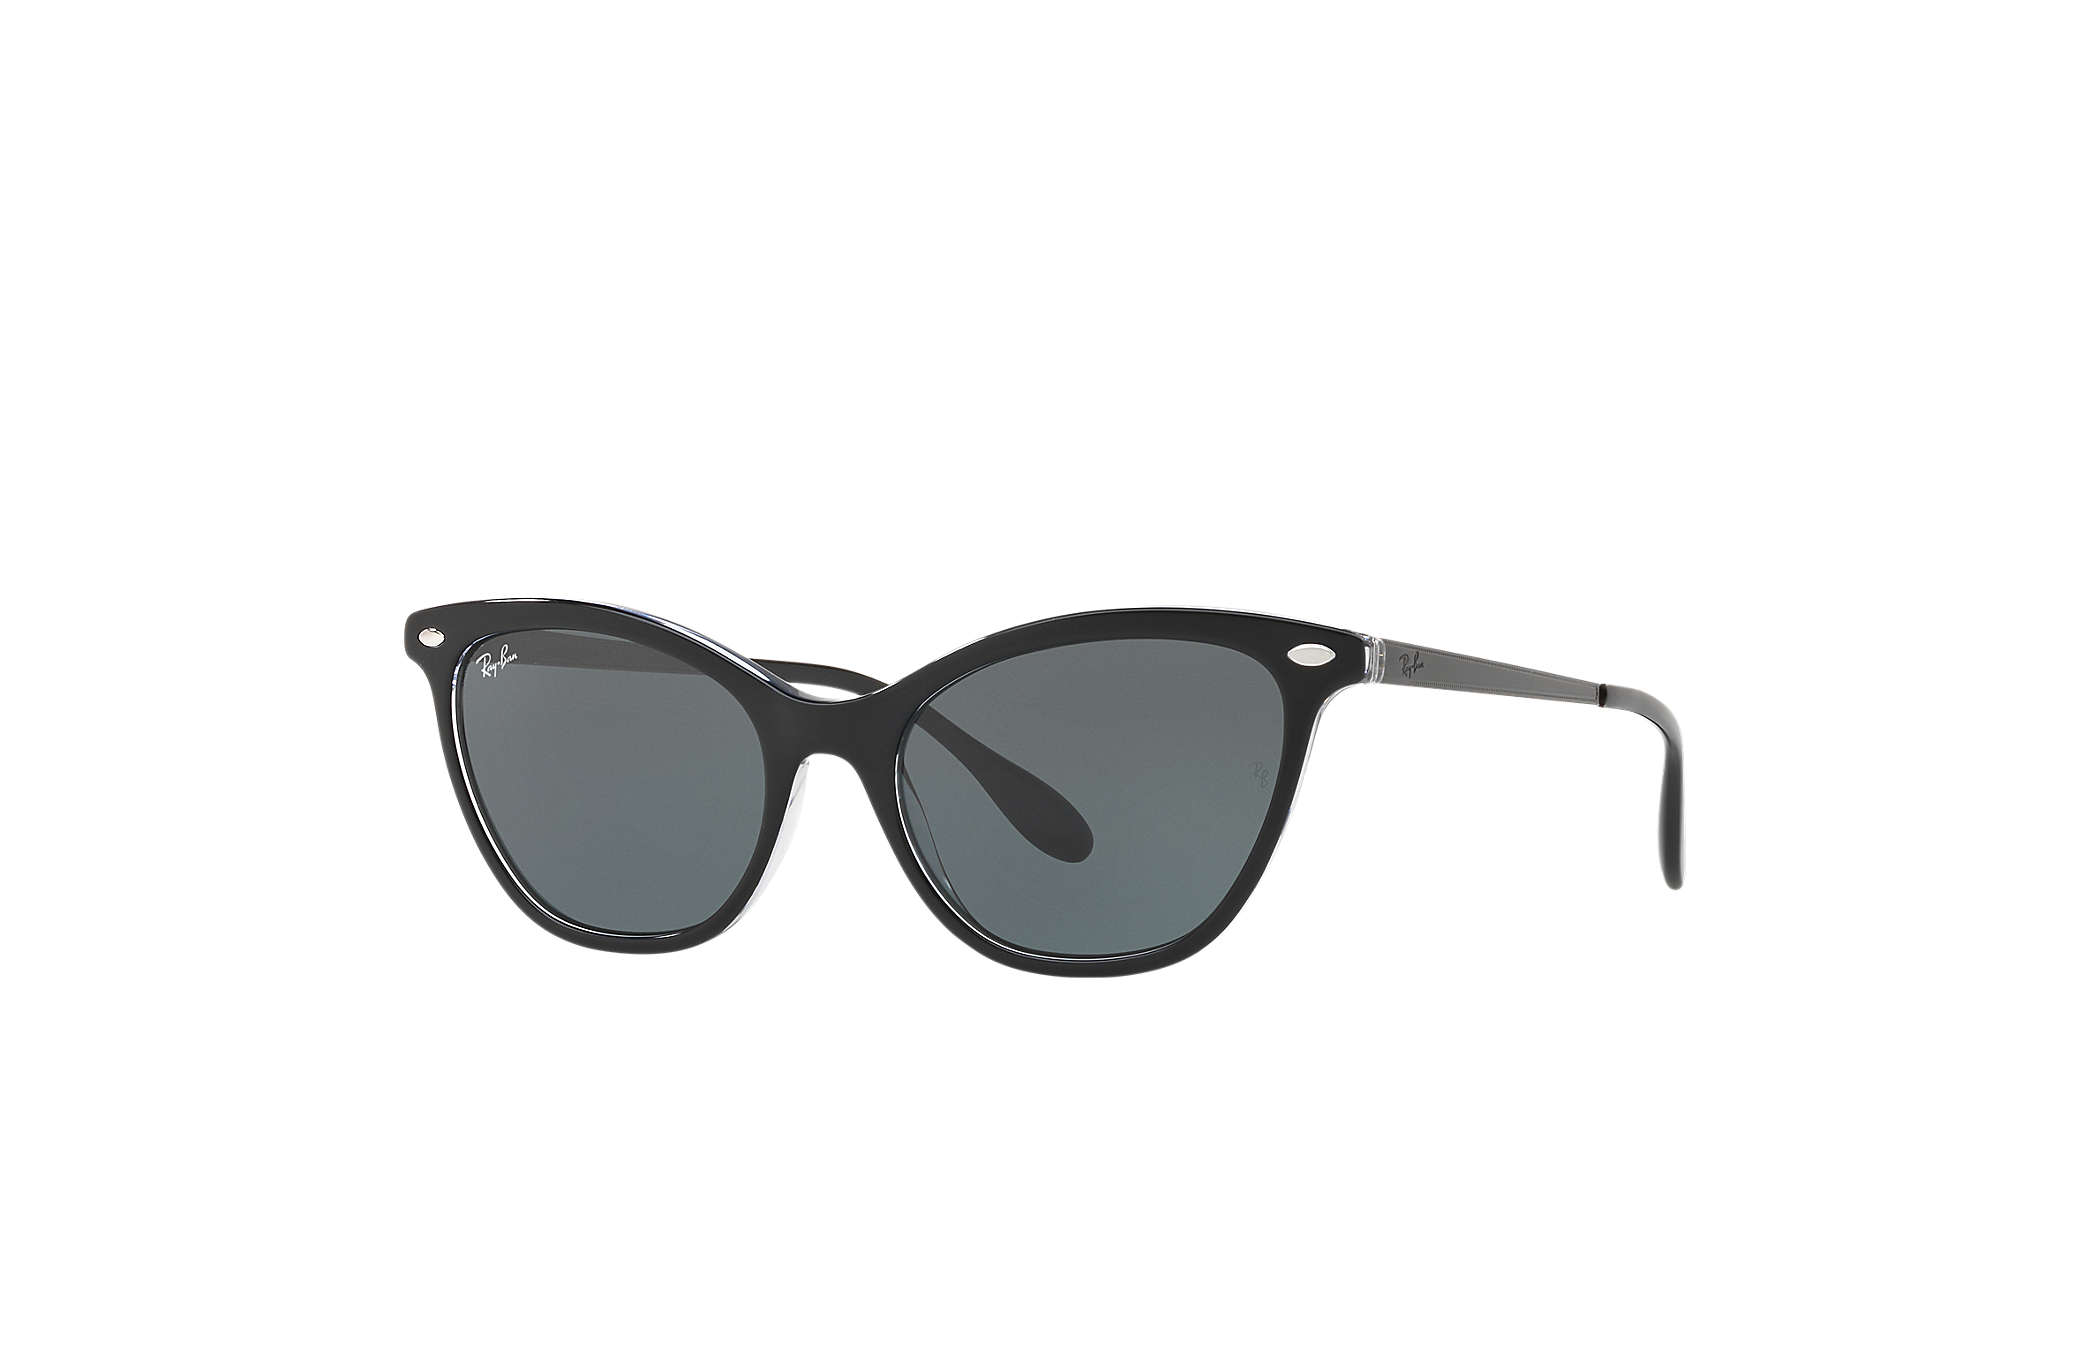 fd9b0a1d872 Ray-Ban RB4360 Black - Acetate - Green Lenses - 0RB4360919 7154 ...